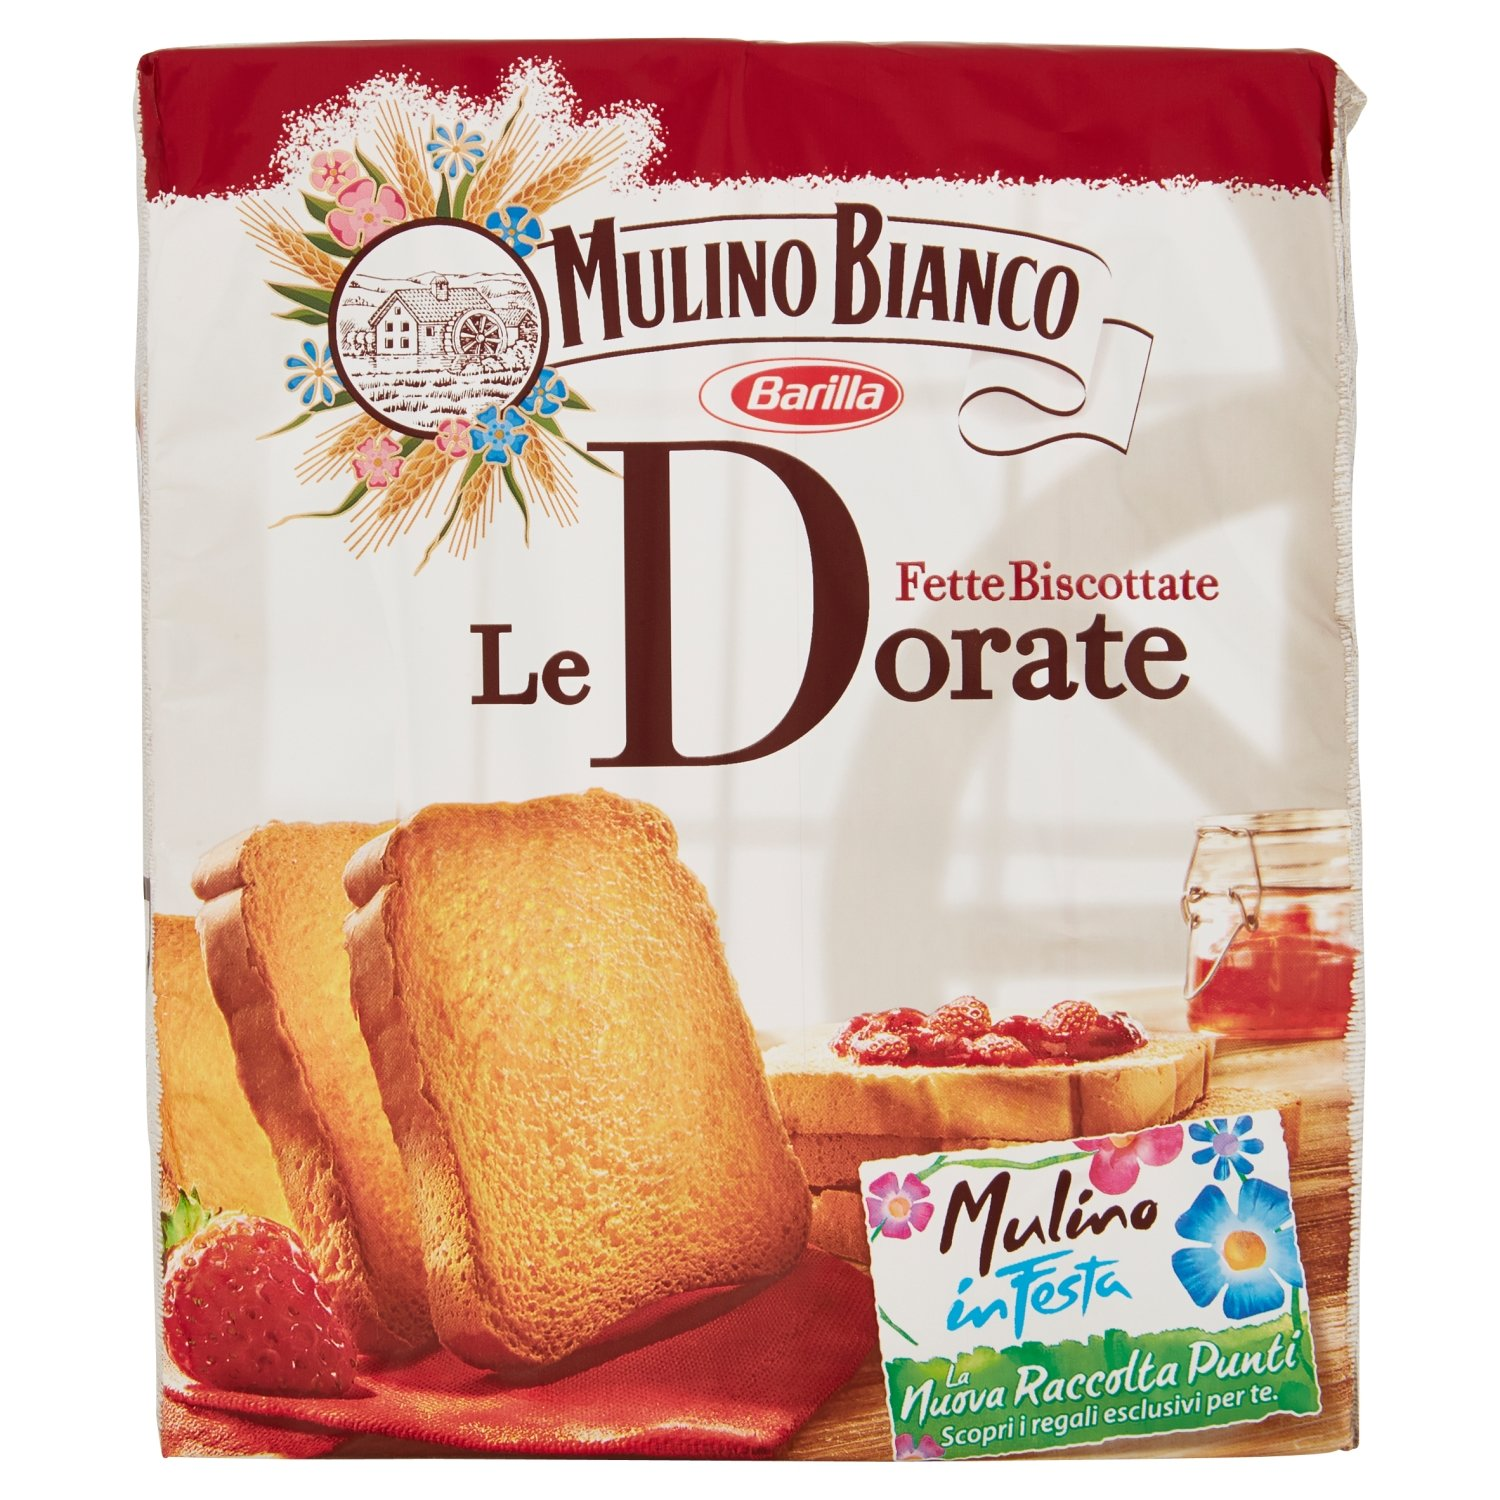 """Mulino Bianco: """" Le Dorate """" Fette Biscottate 36 count - Golden Rusks. Italian Toast - 11.11 Oz (315g) Pack of 2"""